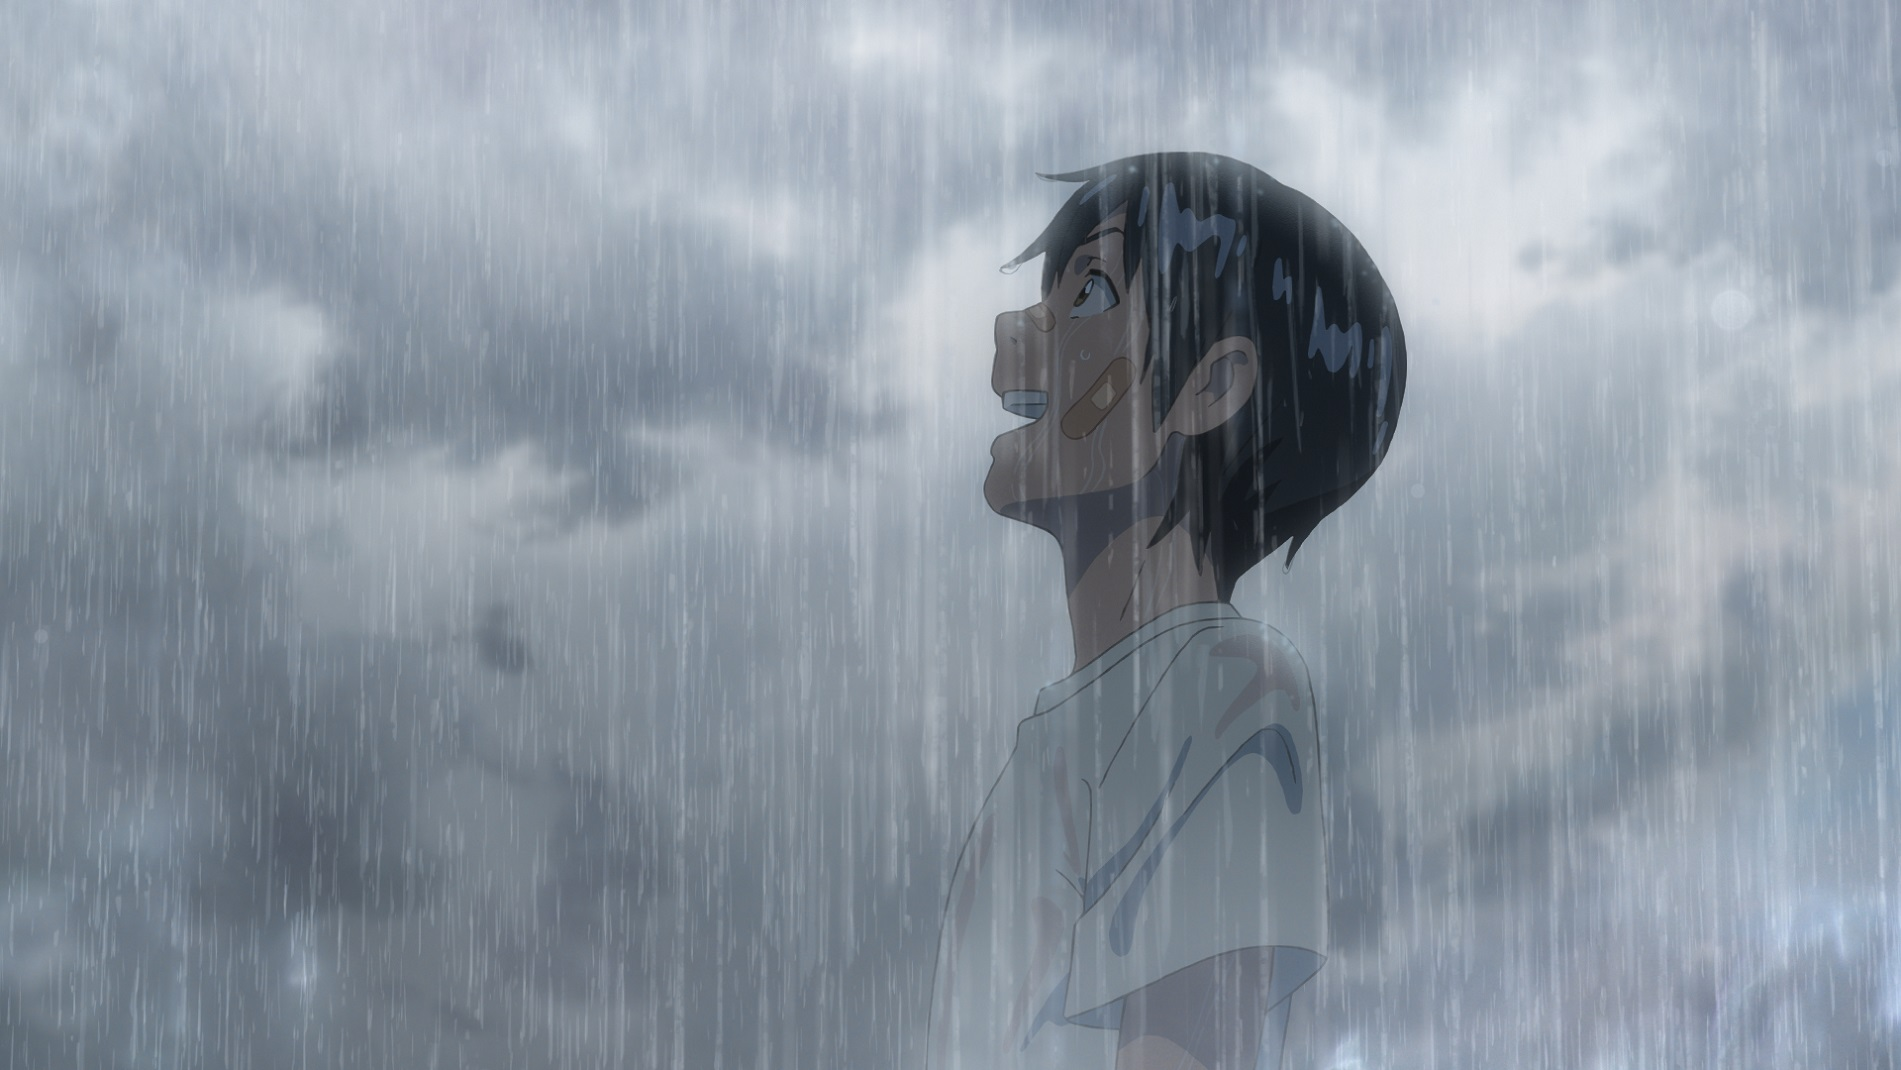 a young man with a bandaged face stands in the pouring rain, looking delighted, in the anime film Weathering With You